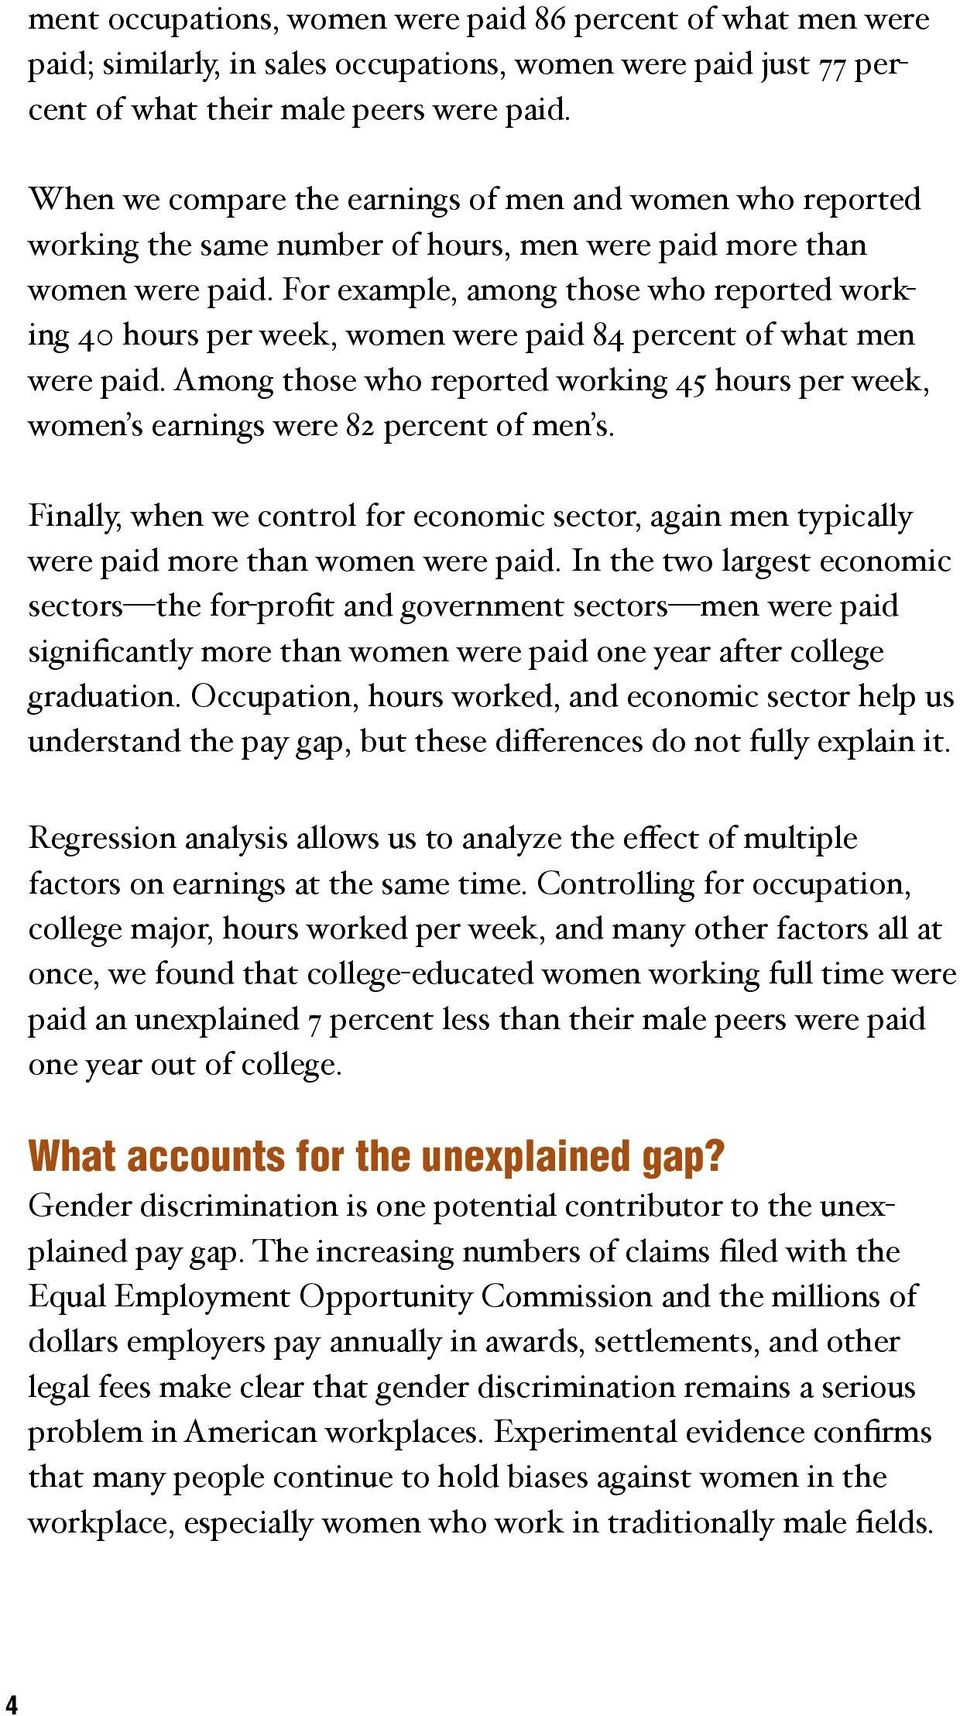 For example, among those who reported working 40 hours per week, women were paid 84 percent of what men were paid.